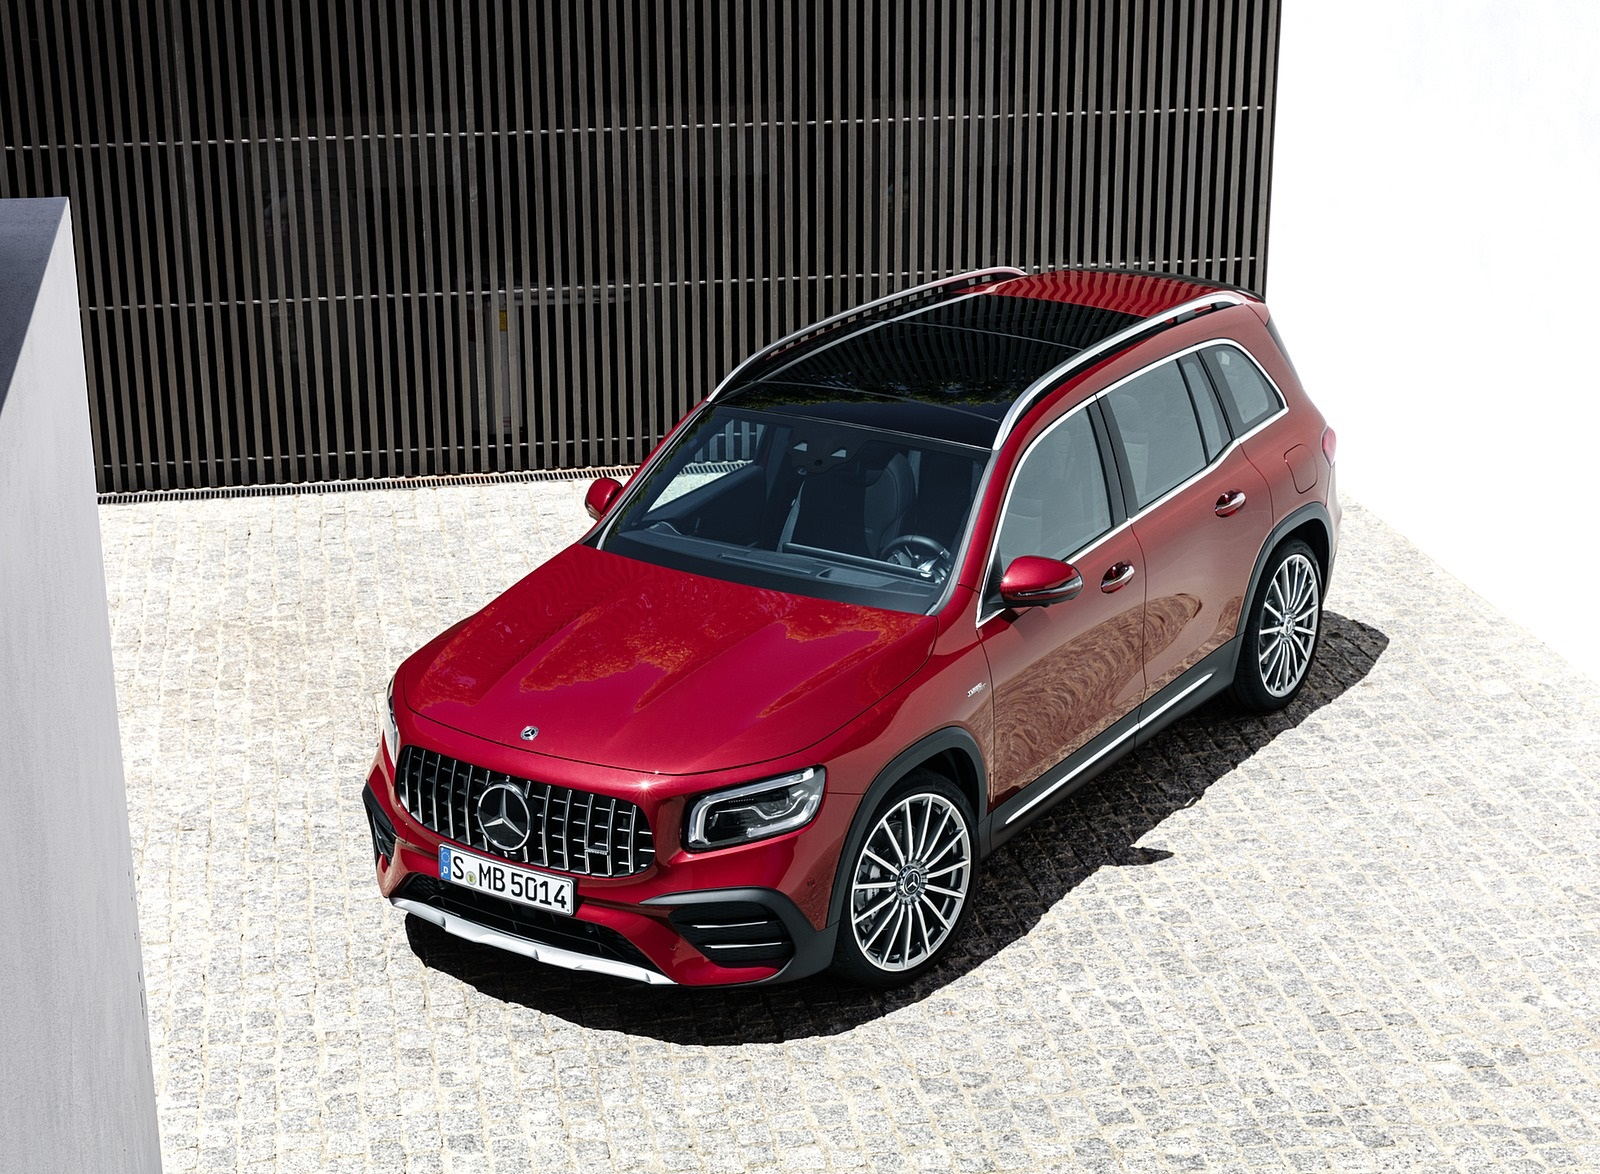 2021 Mercedes-AMG GLB 35 4MATIC (Color: Designo Patagonia Red Metallic) Front Three-Quarter Wallpapers (13)